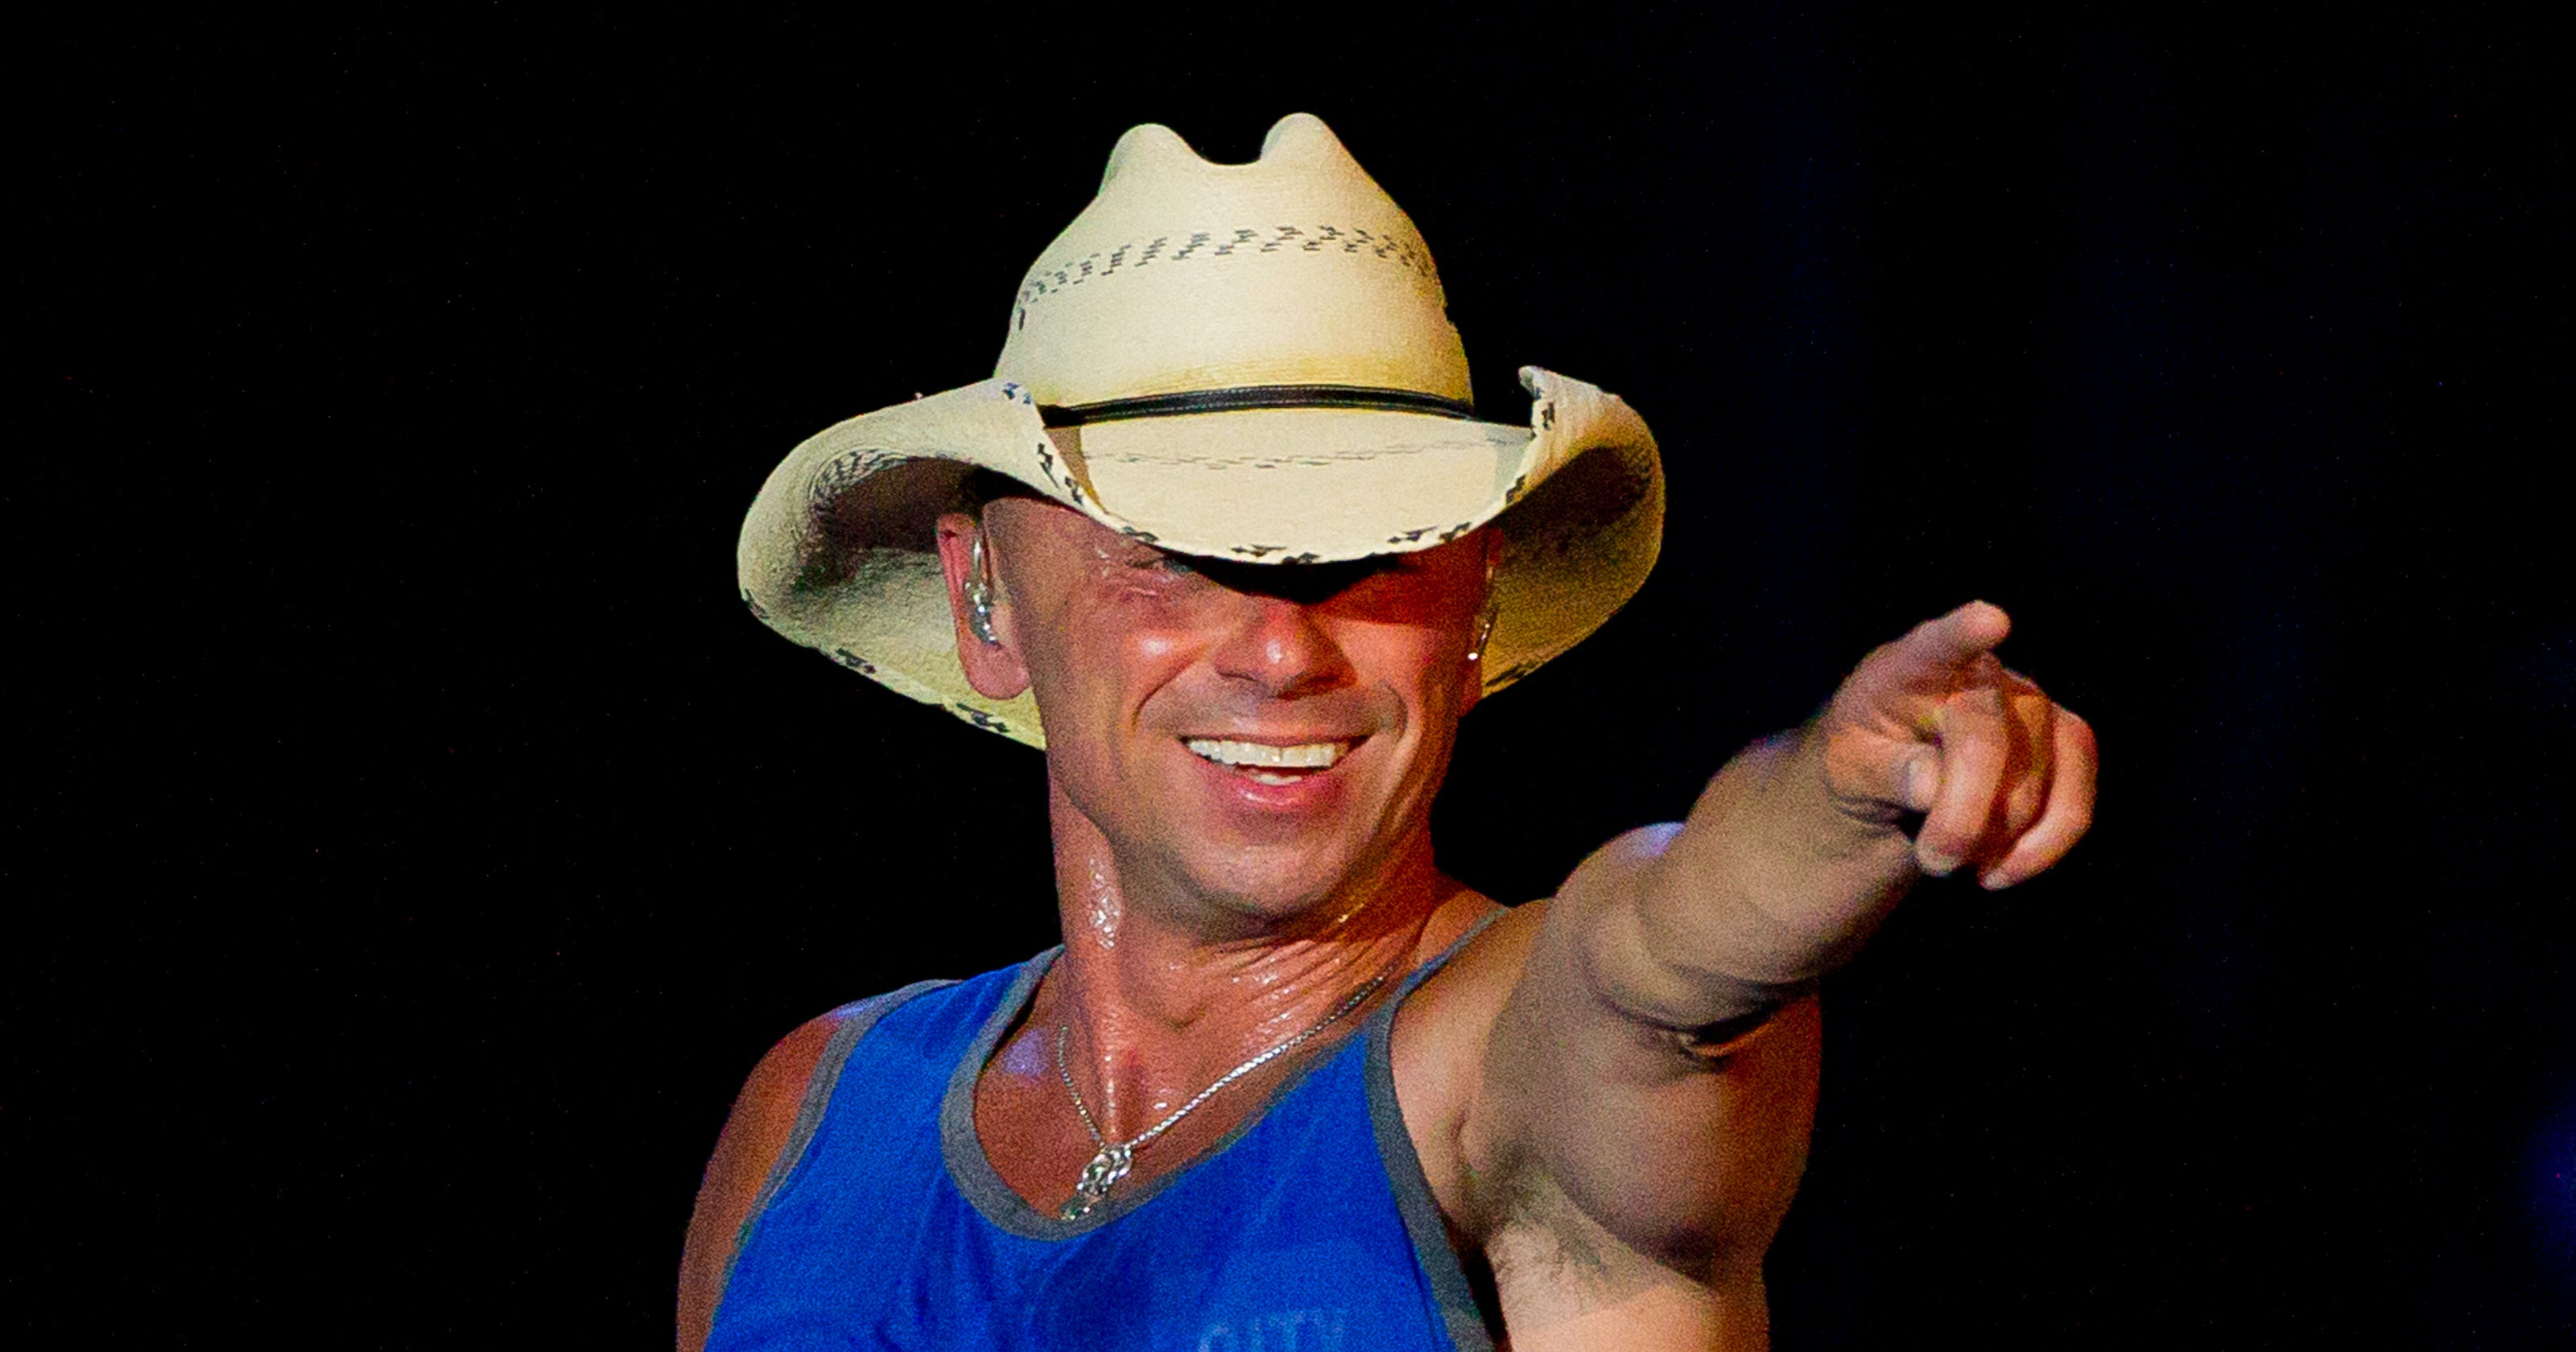 Kenny Chesney celebrates the No Shoes Nation lifestyle at Chase Field